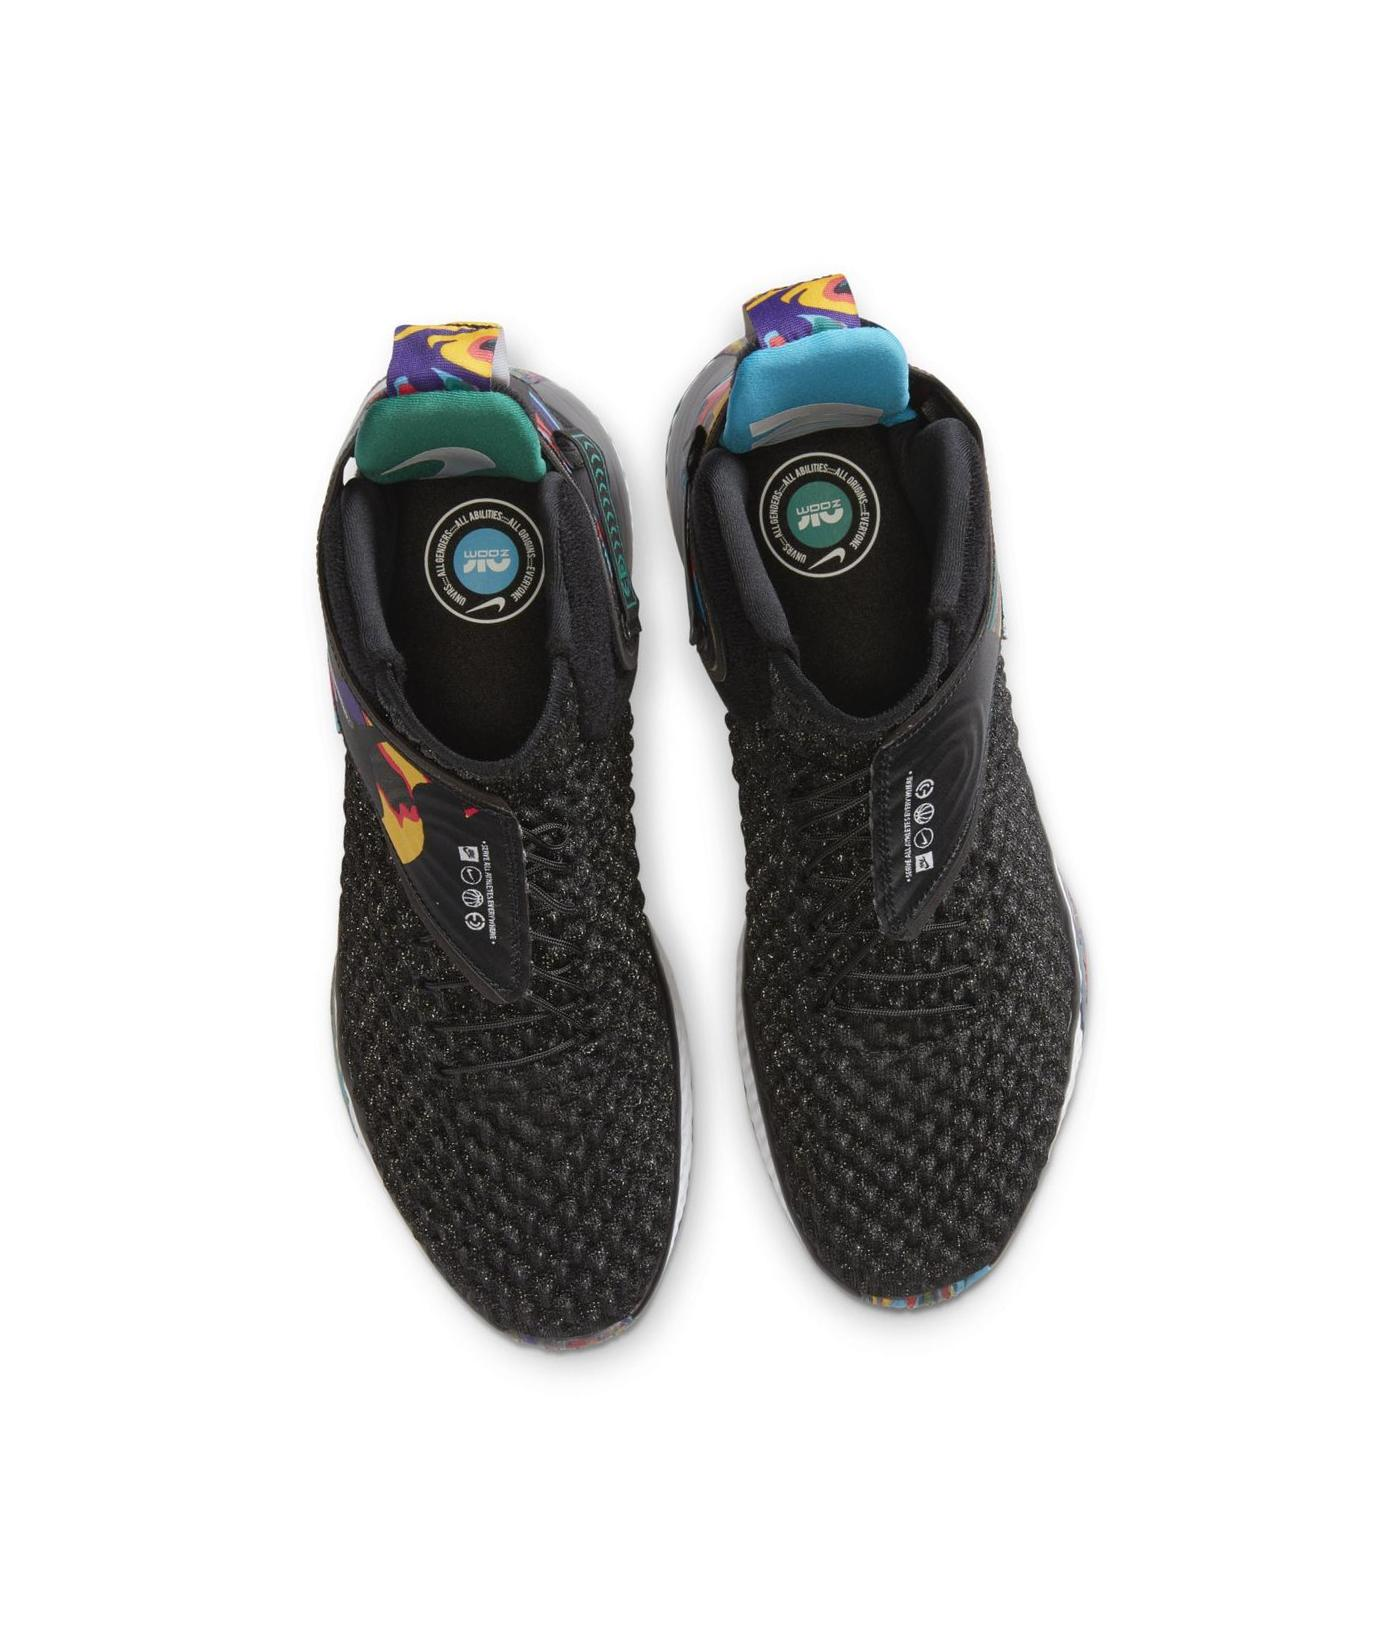 Nike Air Zoom UNVRS Fly Ease  Black/Black/Current Blue/White